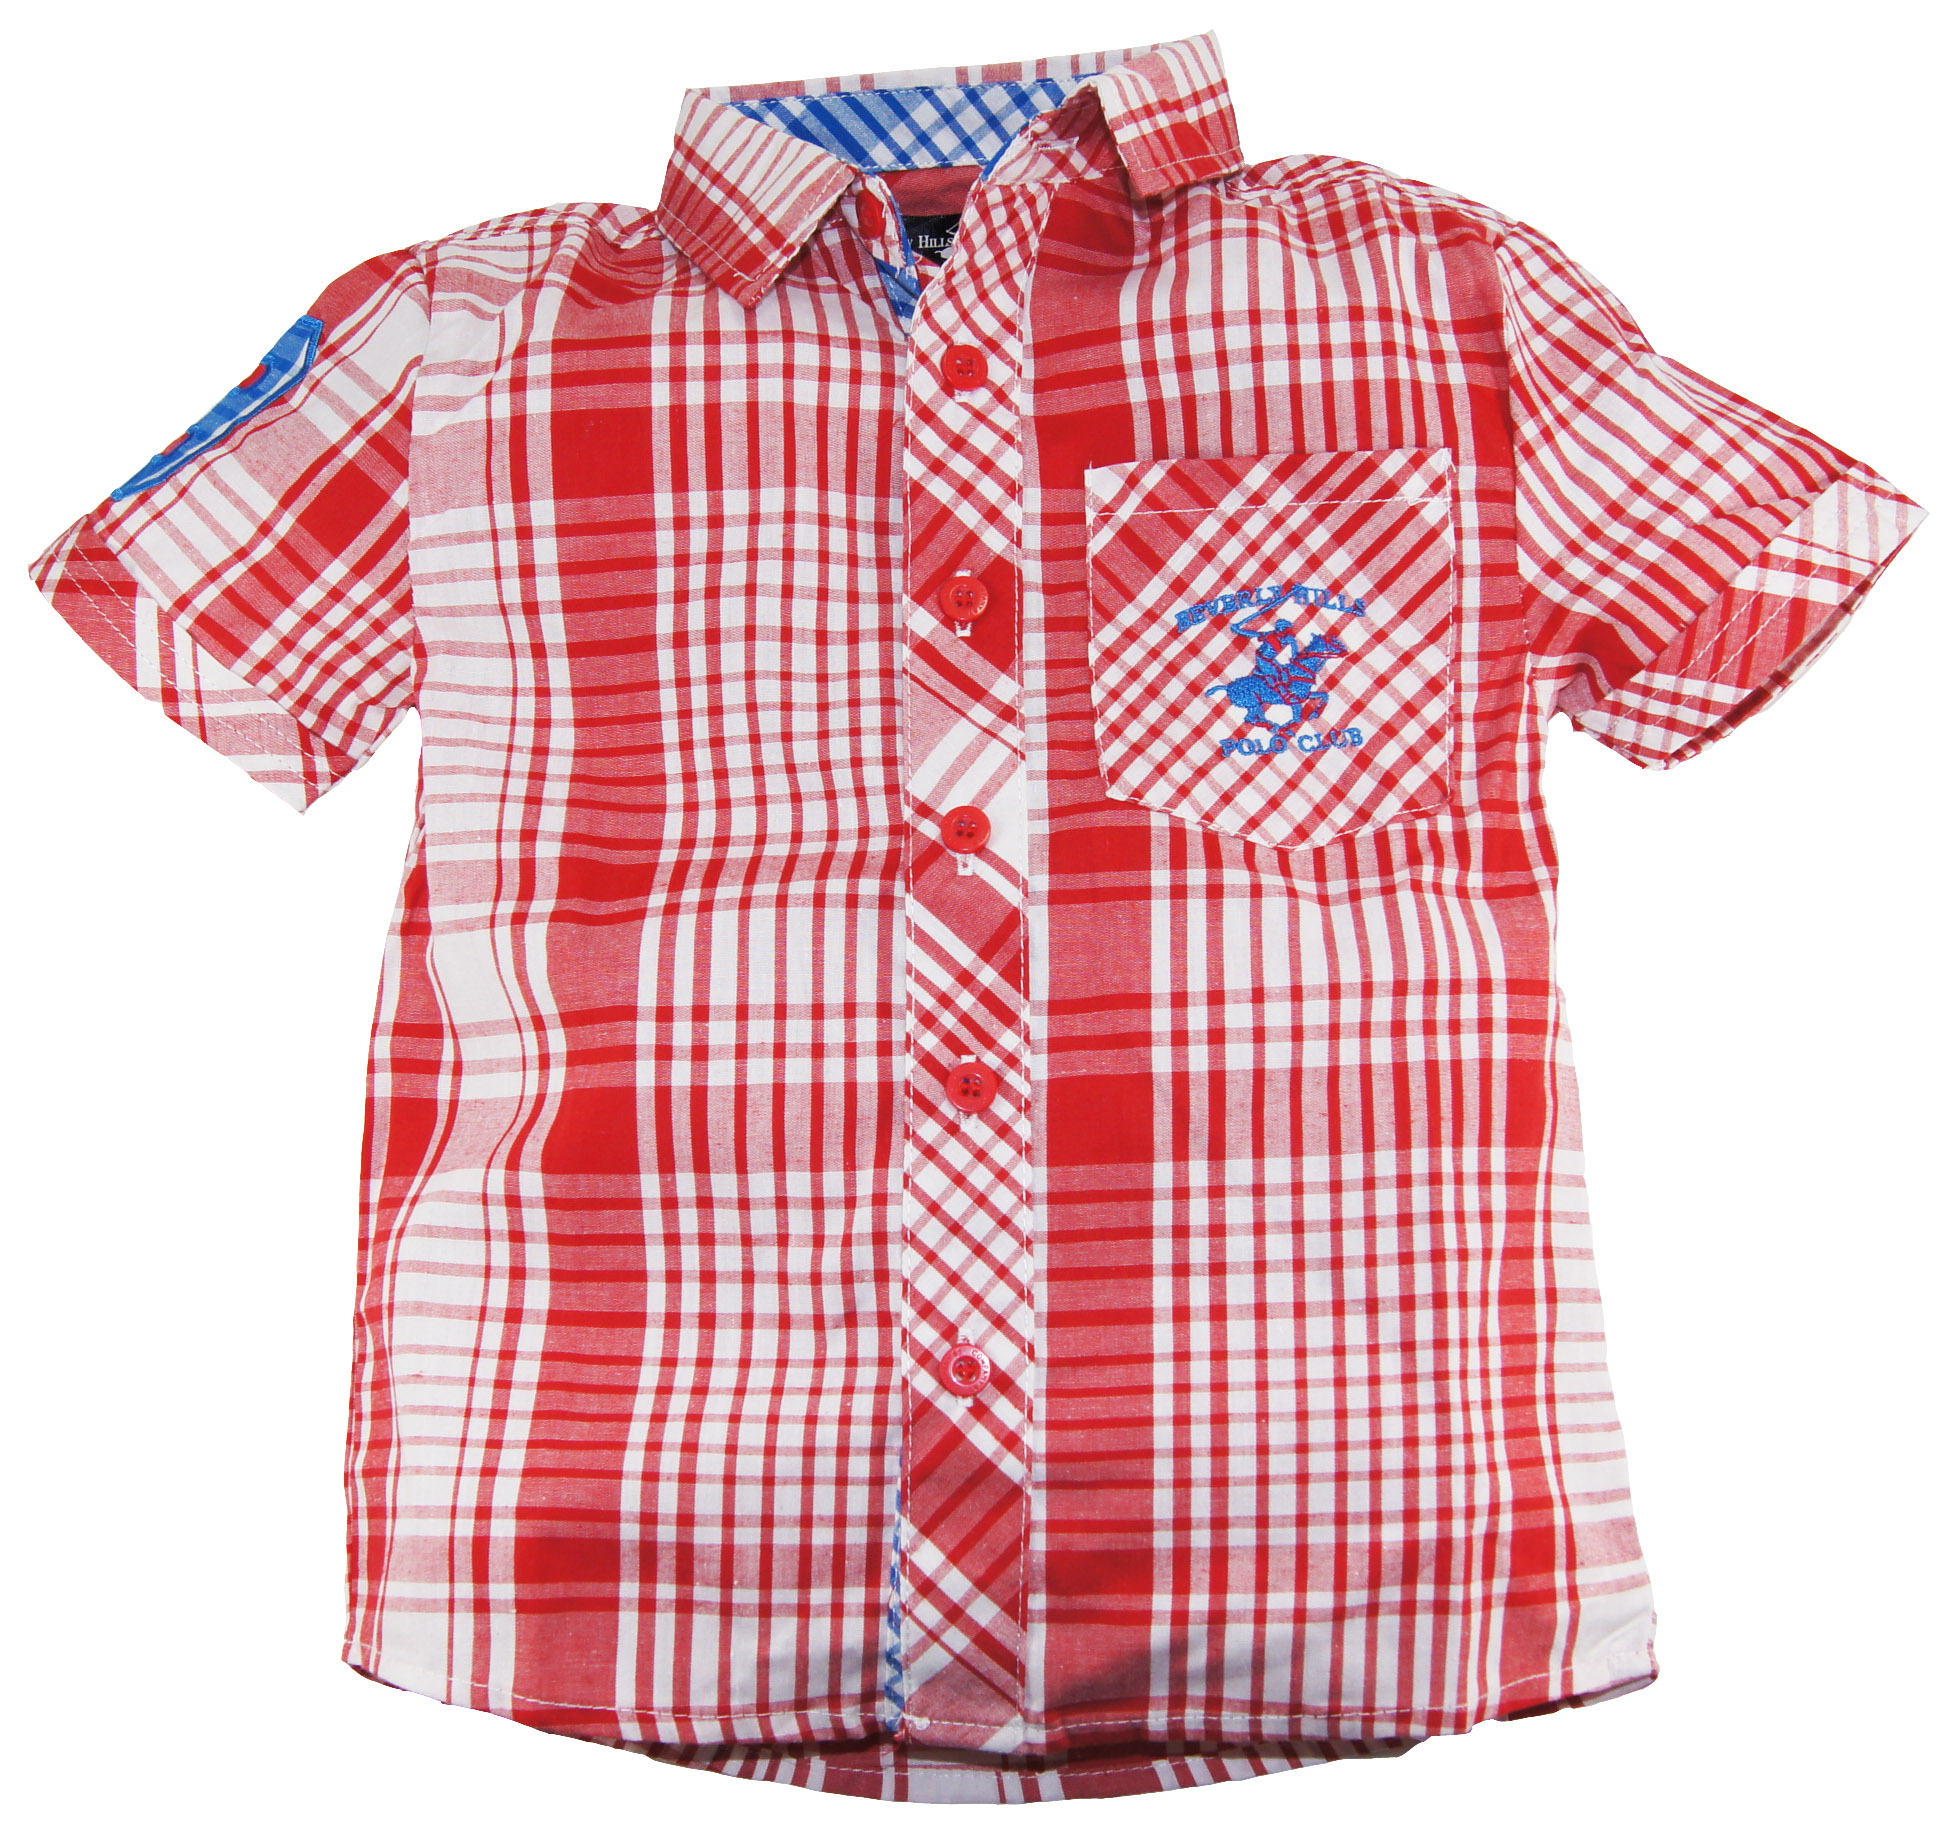 Beverly Hills Polo Club Little Boys' Red Plaid Short Sleeve Shirt